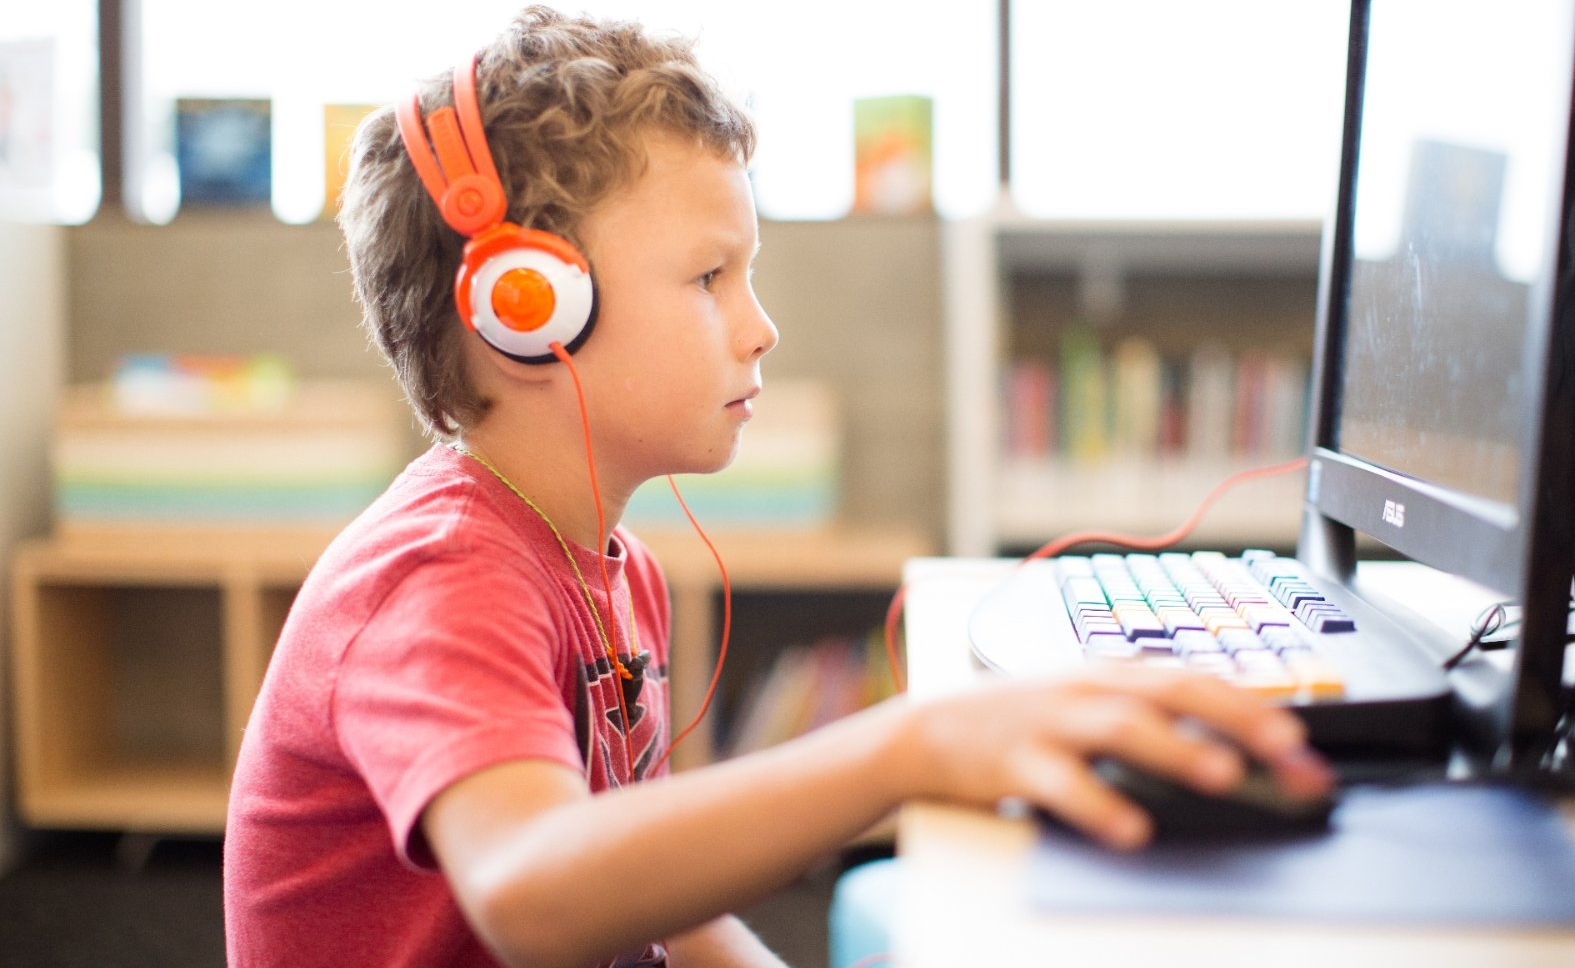 Boy uses headphones and computer at the library.